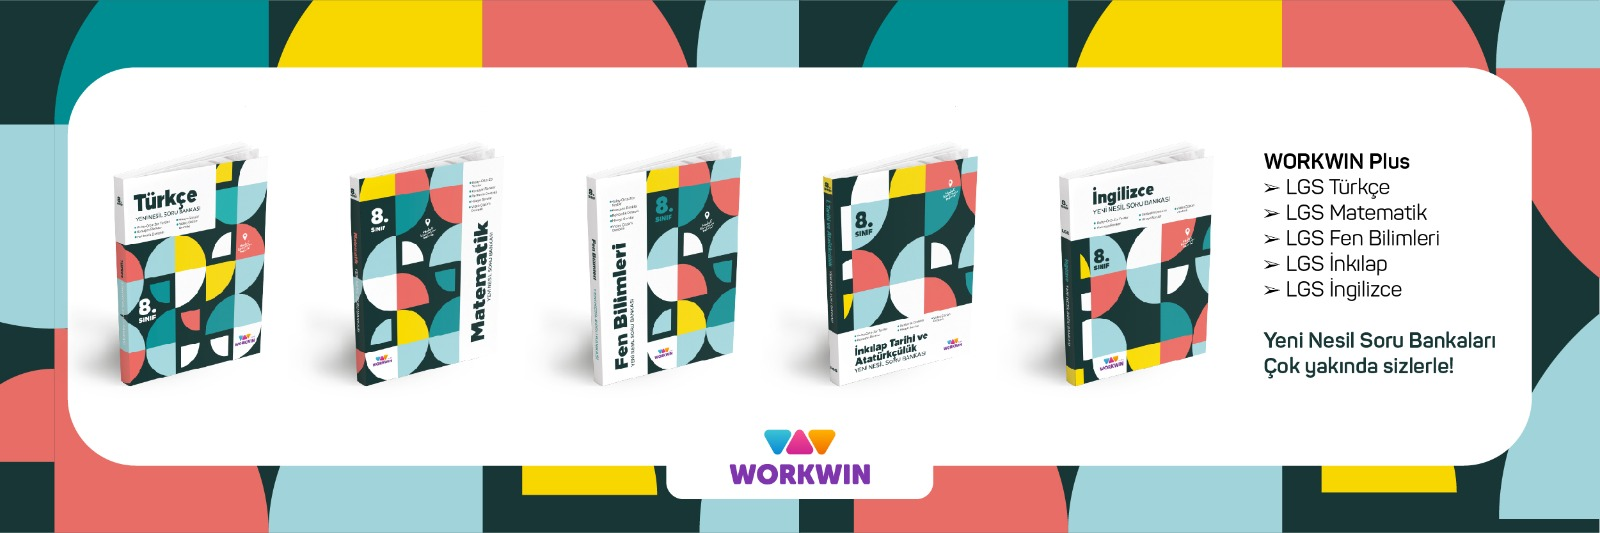 Workwin Plus LGS